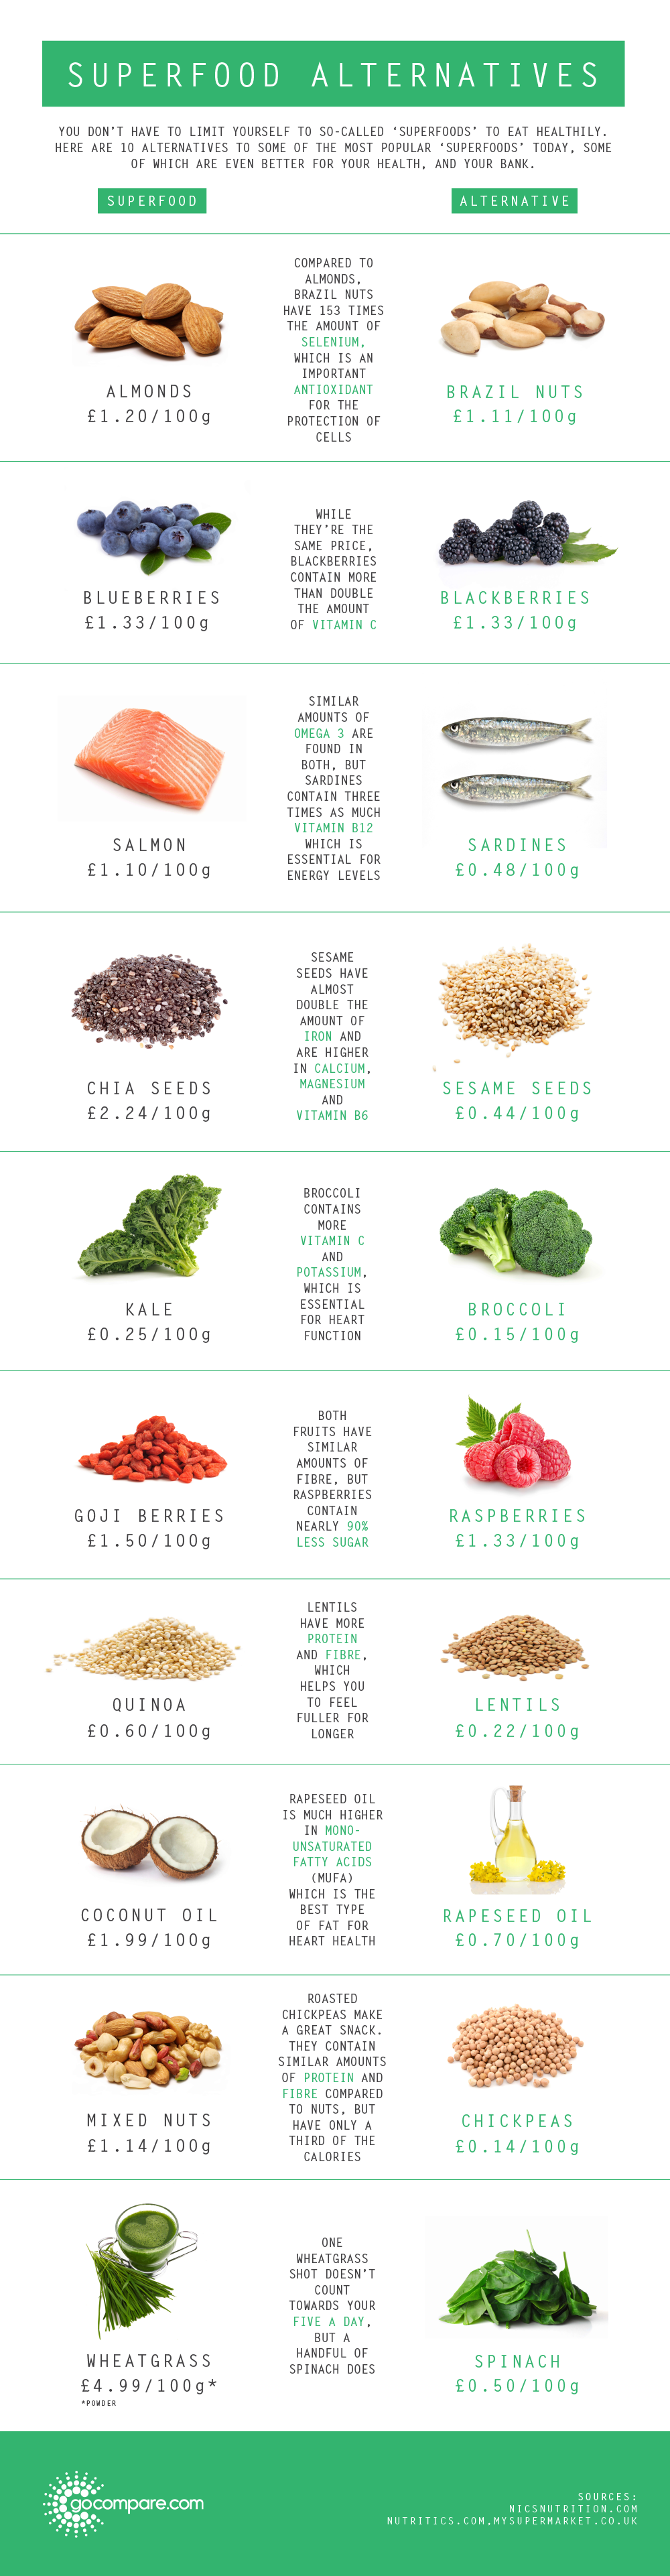 Superfood Alternatives